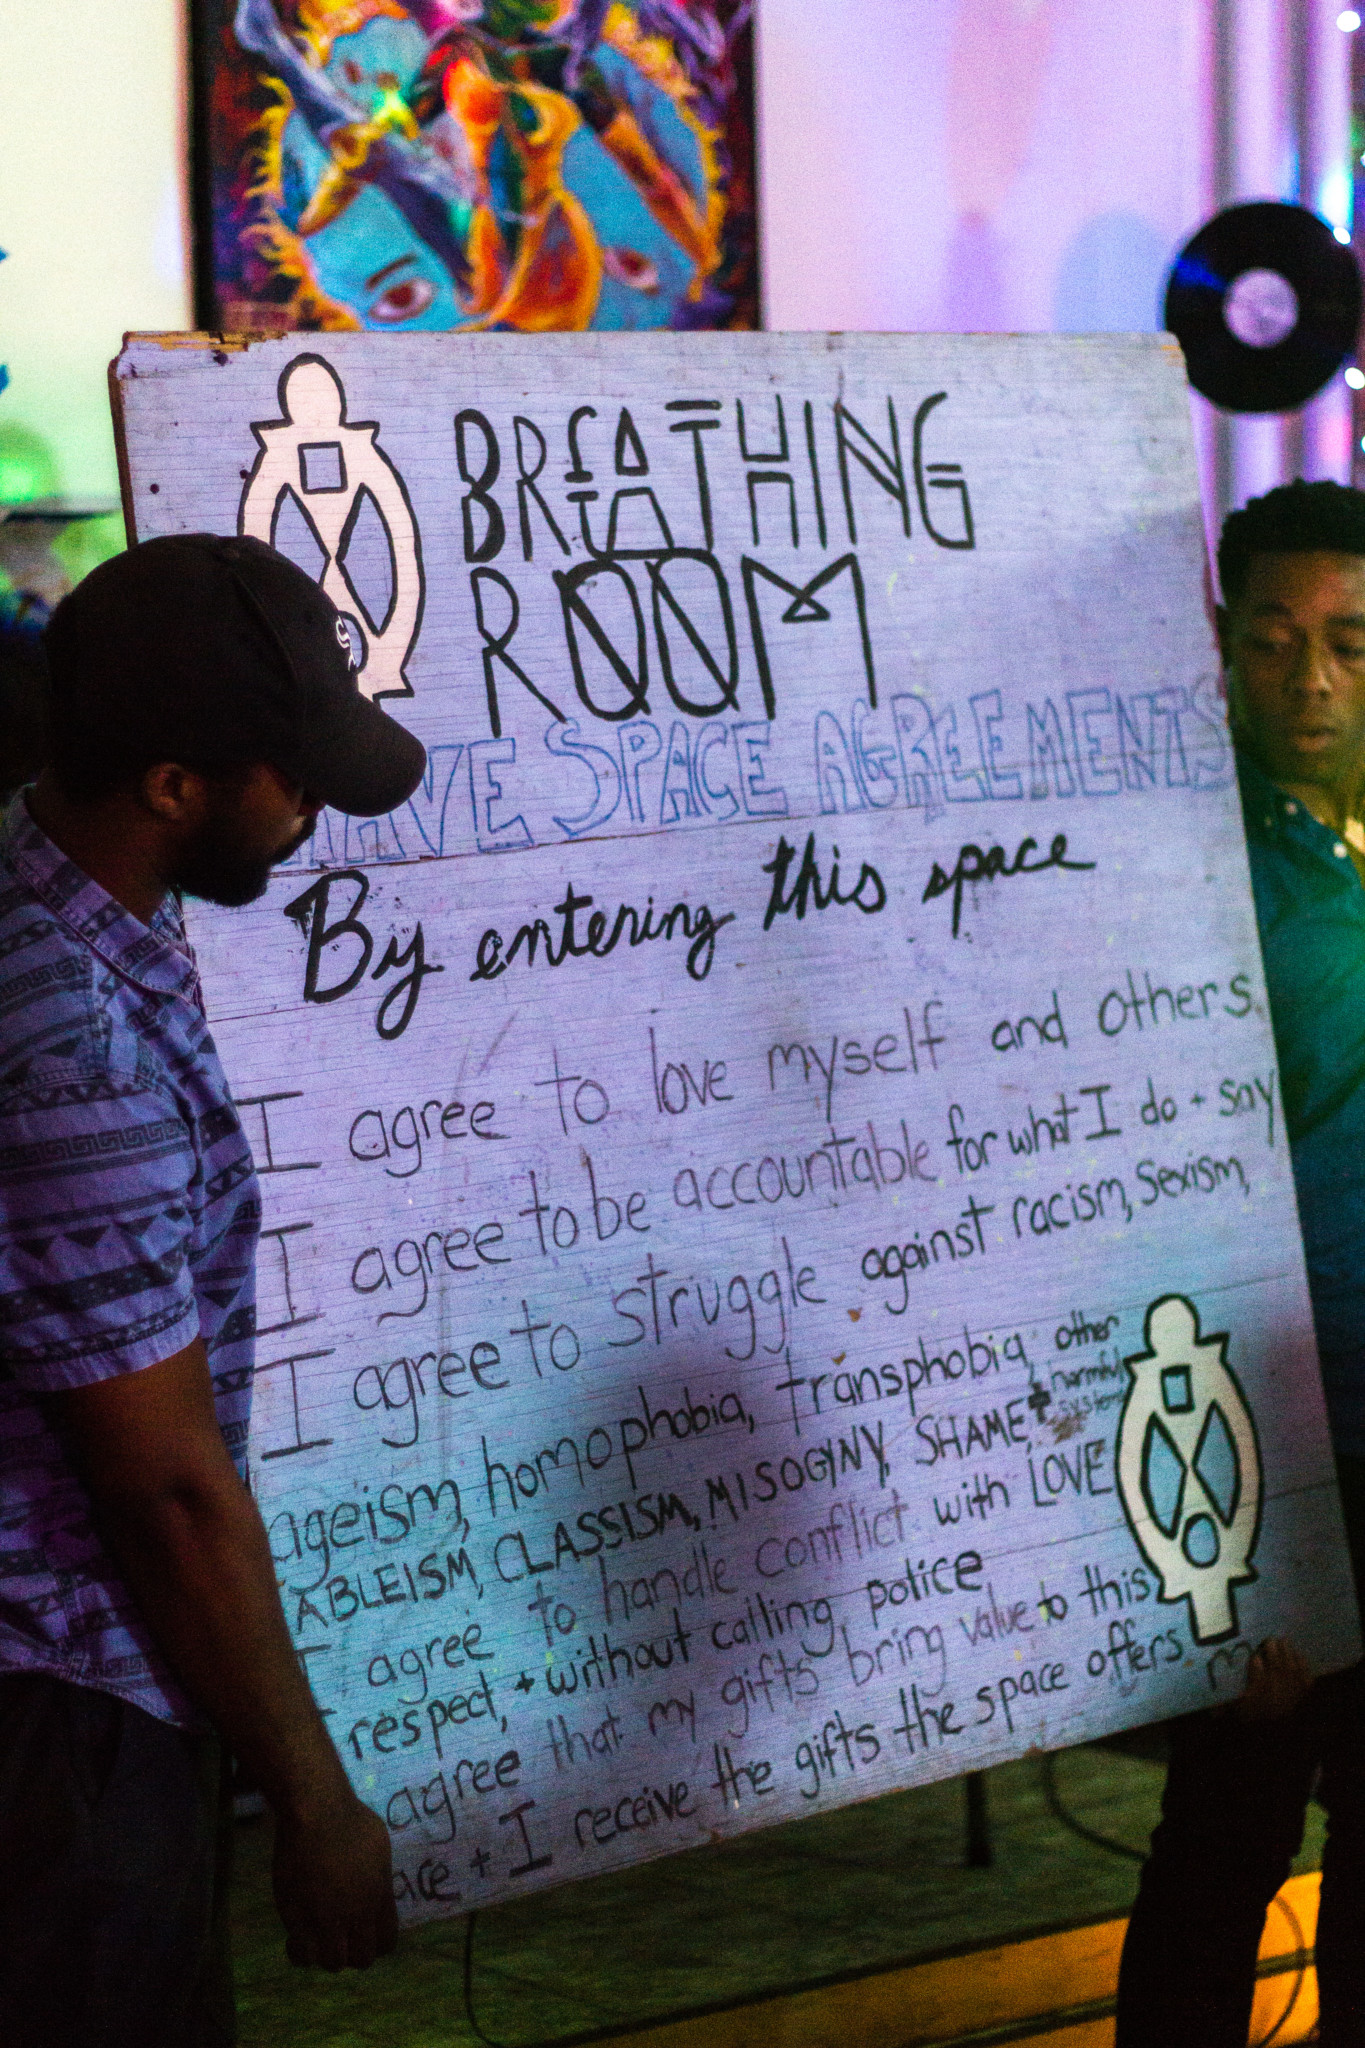 Before the open mic starts, organizers of the #BreathingRoom read the space agreements to create a safe space for all in attendance.